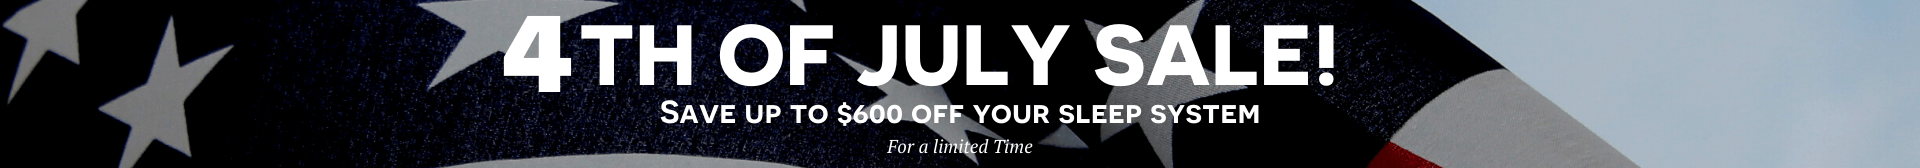 White American Flag Photo Sale Promo Fourth of July Facebook Post